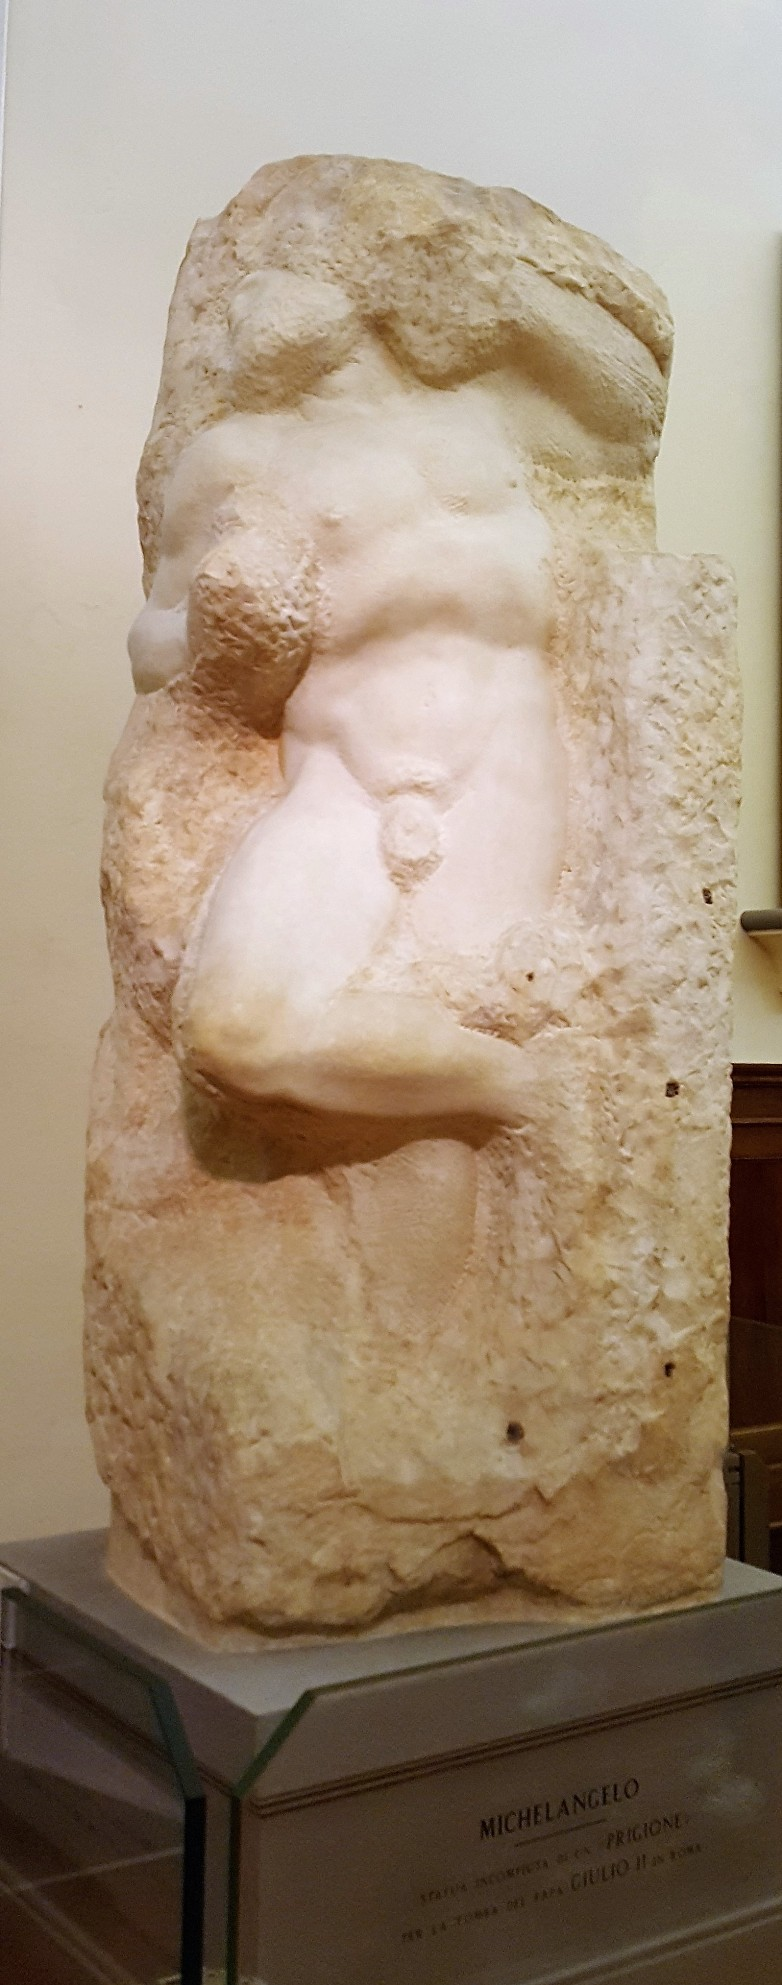 Young Slave Michelangelo Florence Accademia Slaves Prisoners